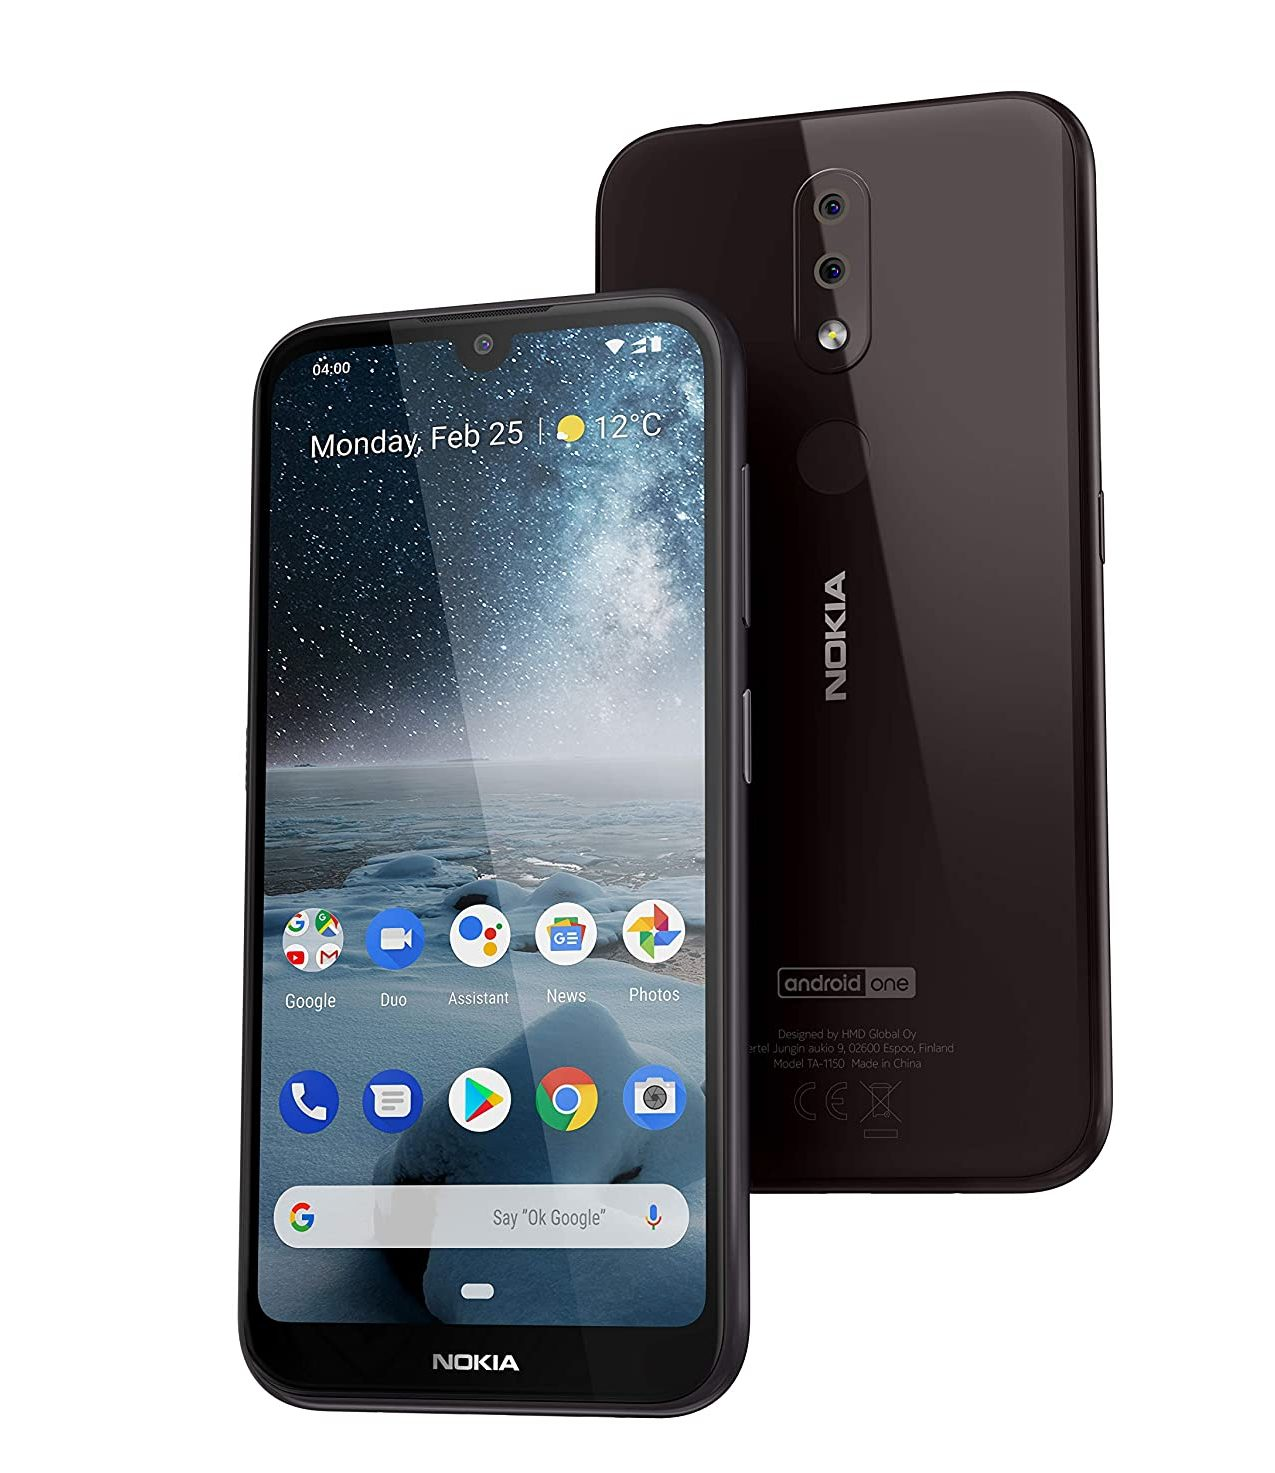 Nokia 4.2 [3 GB RAM, 32 GB ROM]-best non-chinese mobile phone in India under 10000 2020